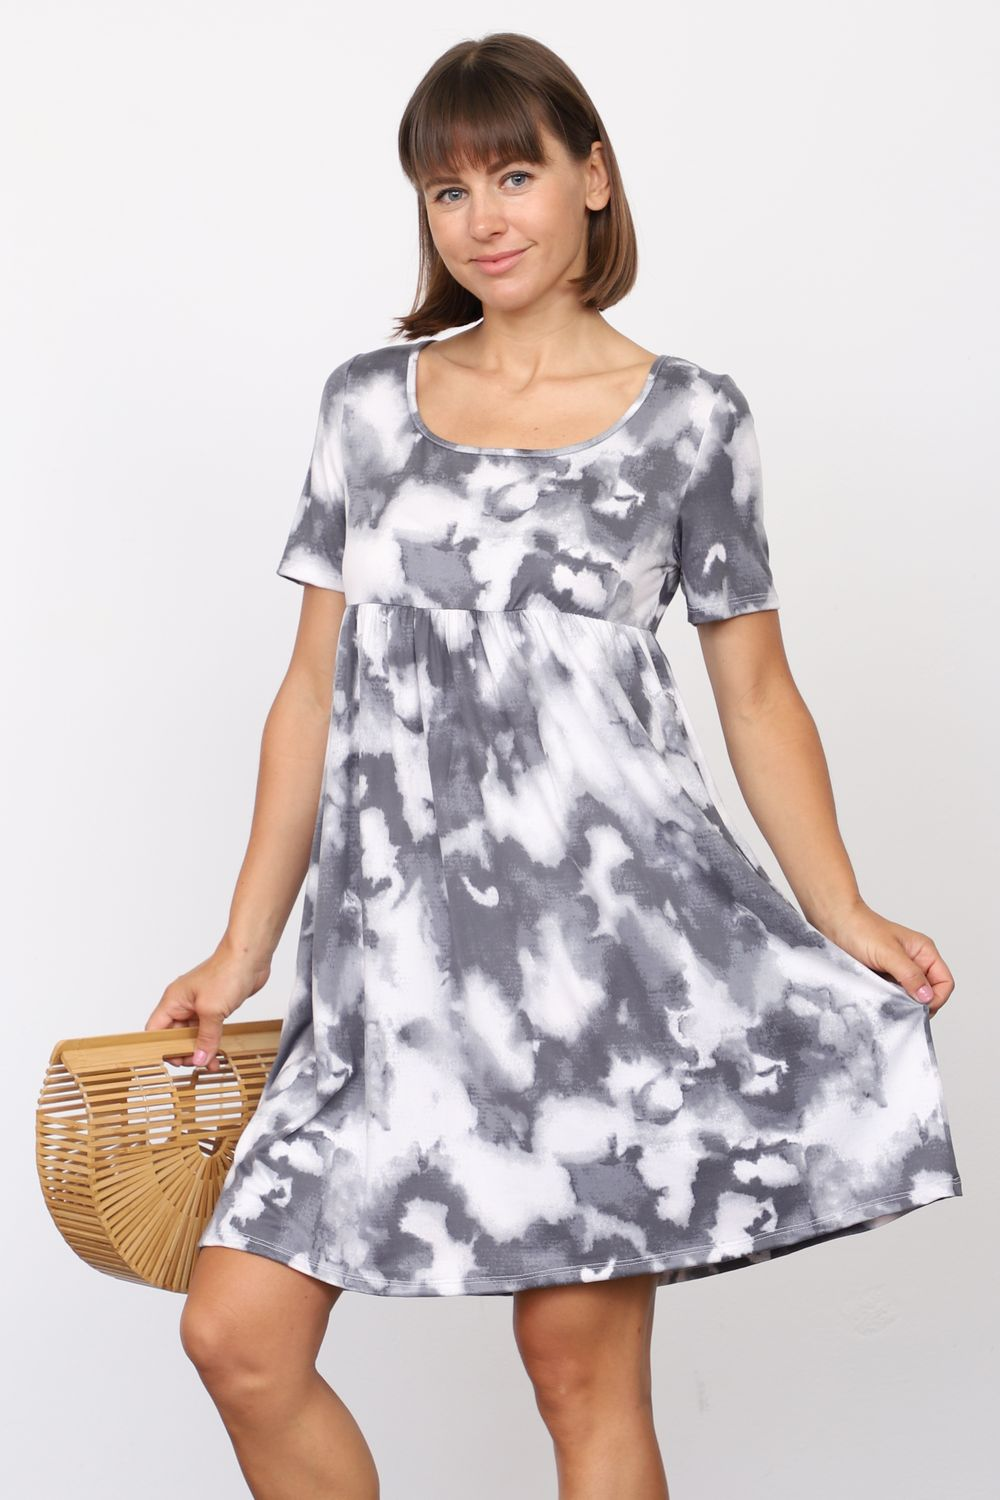 Charcoal Marble Tie Dye Short Sleeve Empire Waist Mini Dress_Plus